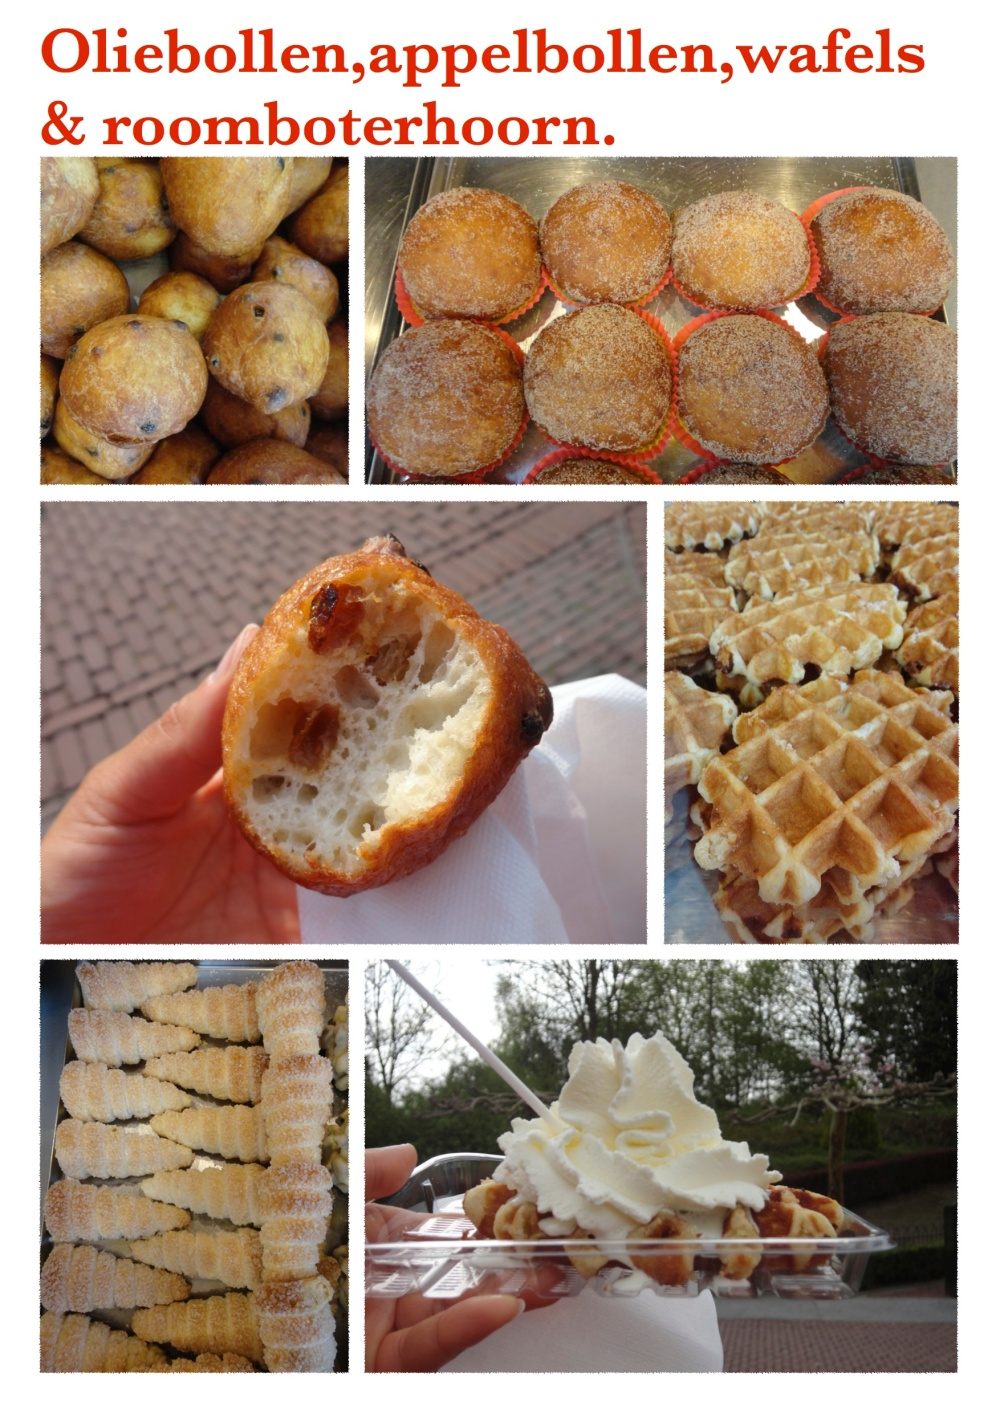 Walibi holland - Snack.